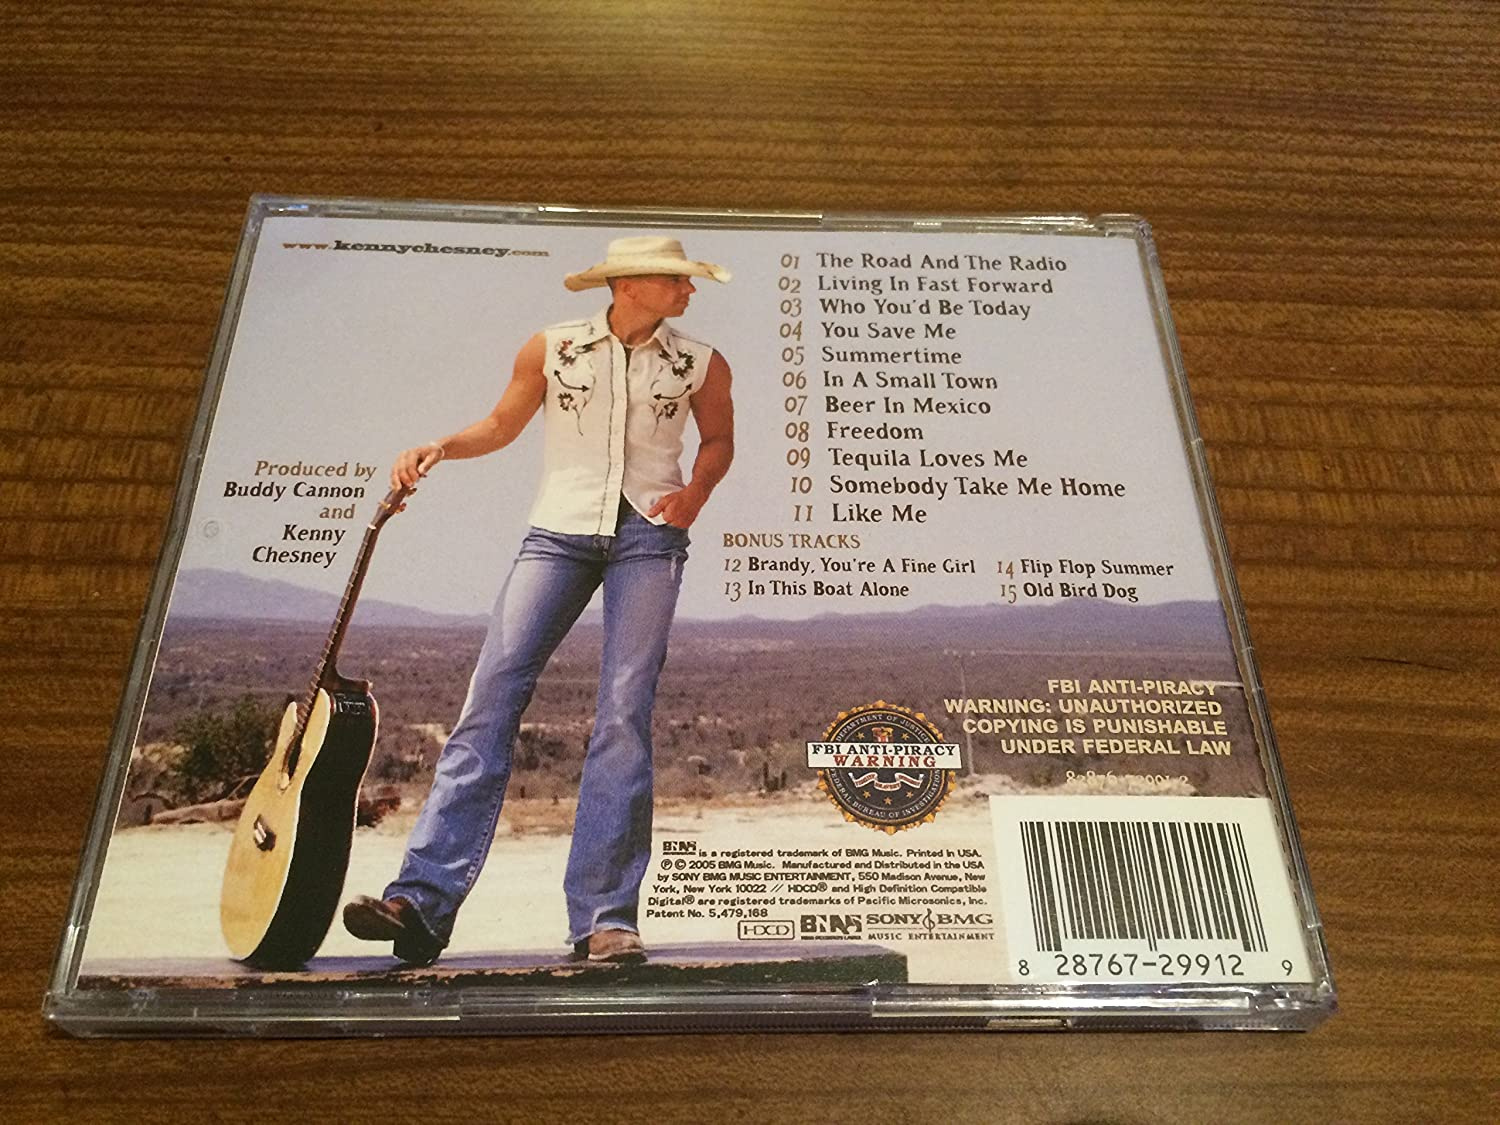 Kenny Chesney - The Road And The Radio (Target Limited Edition ...